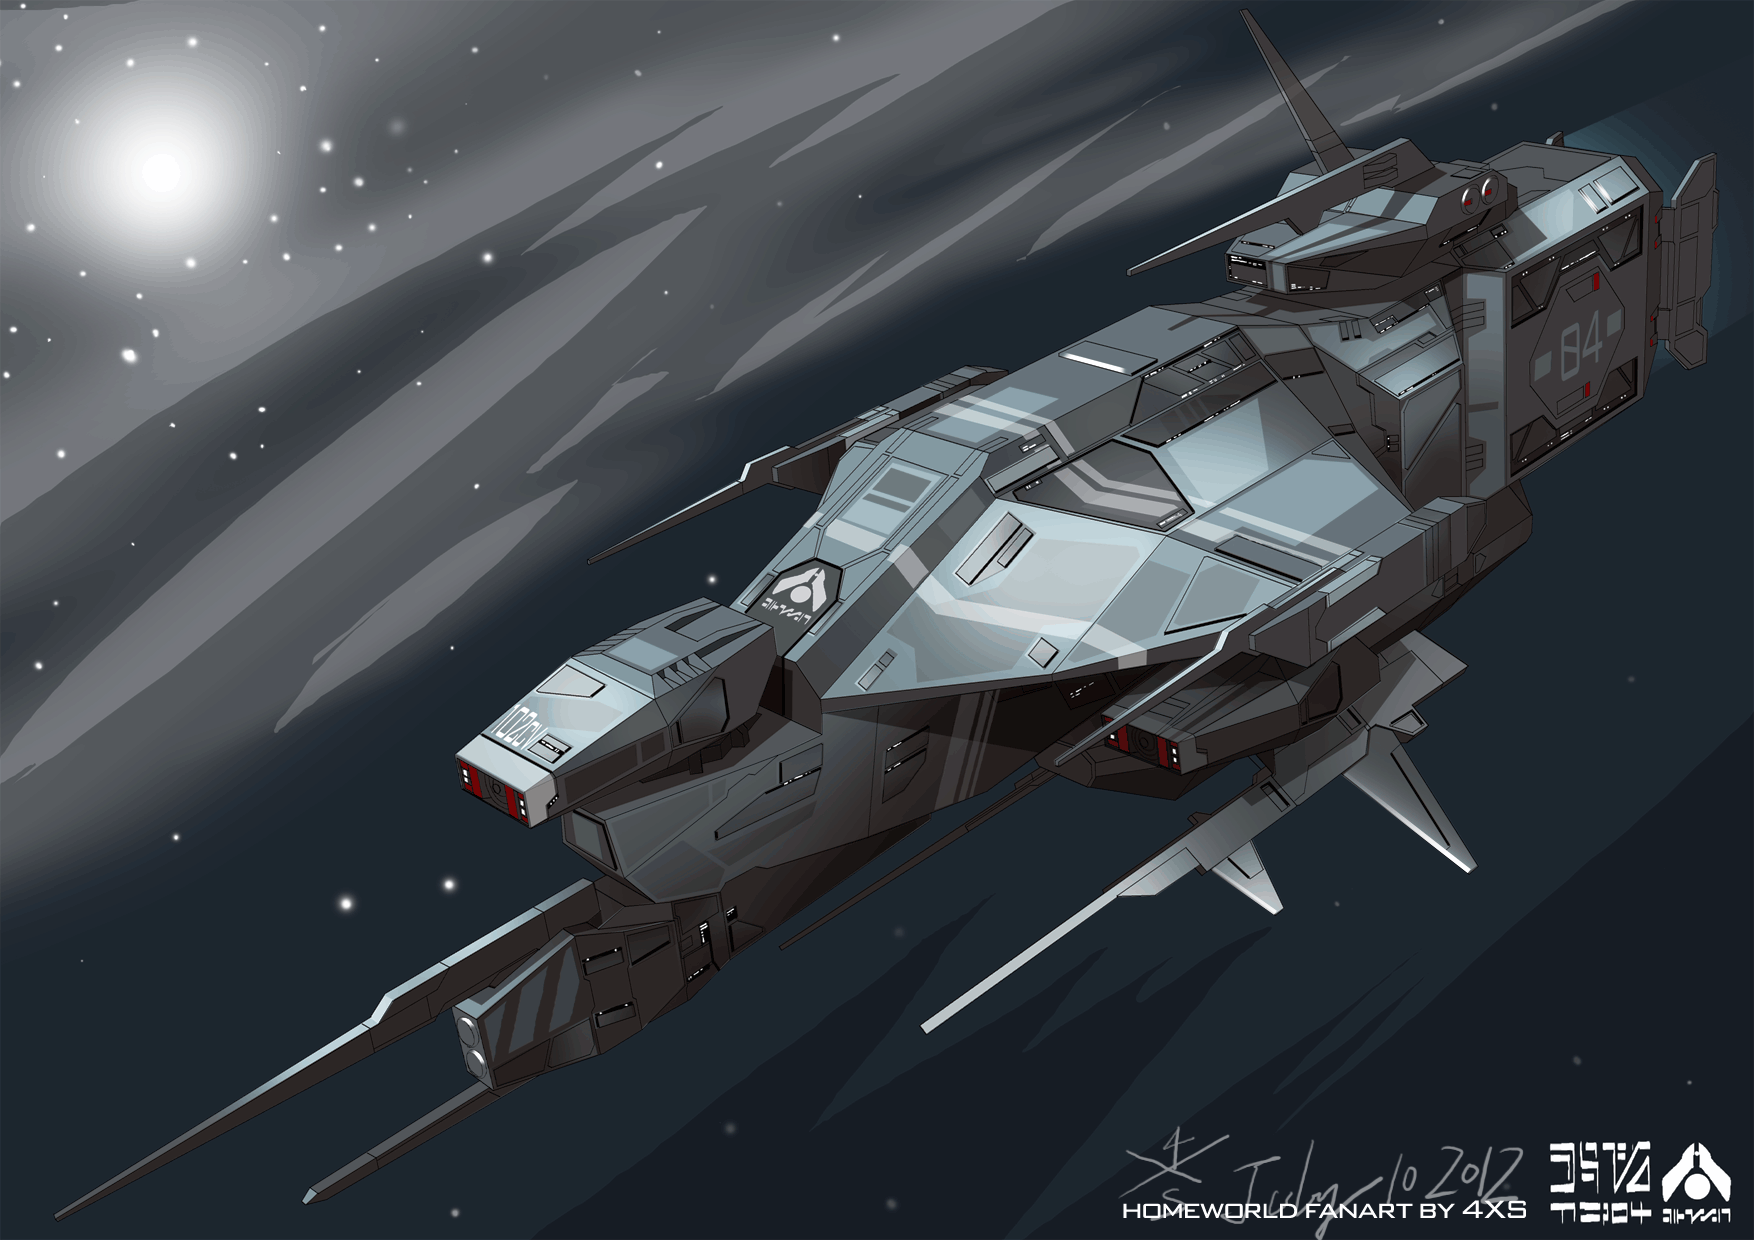 Kushan Destroyer from Homeworld PC game 1 by myname1z4xs